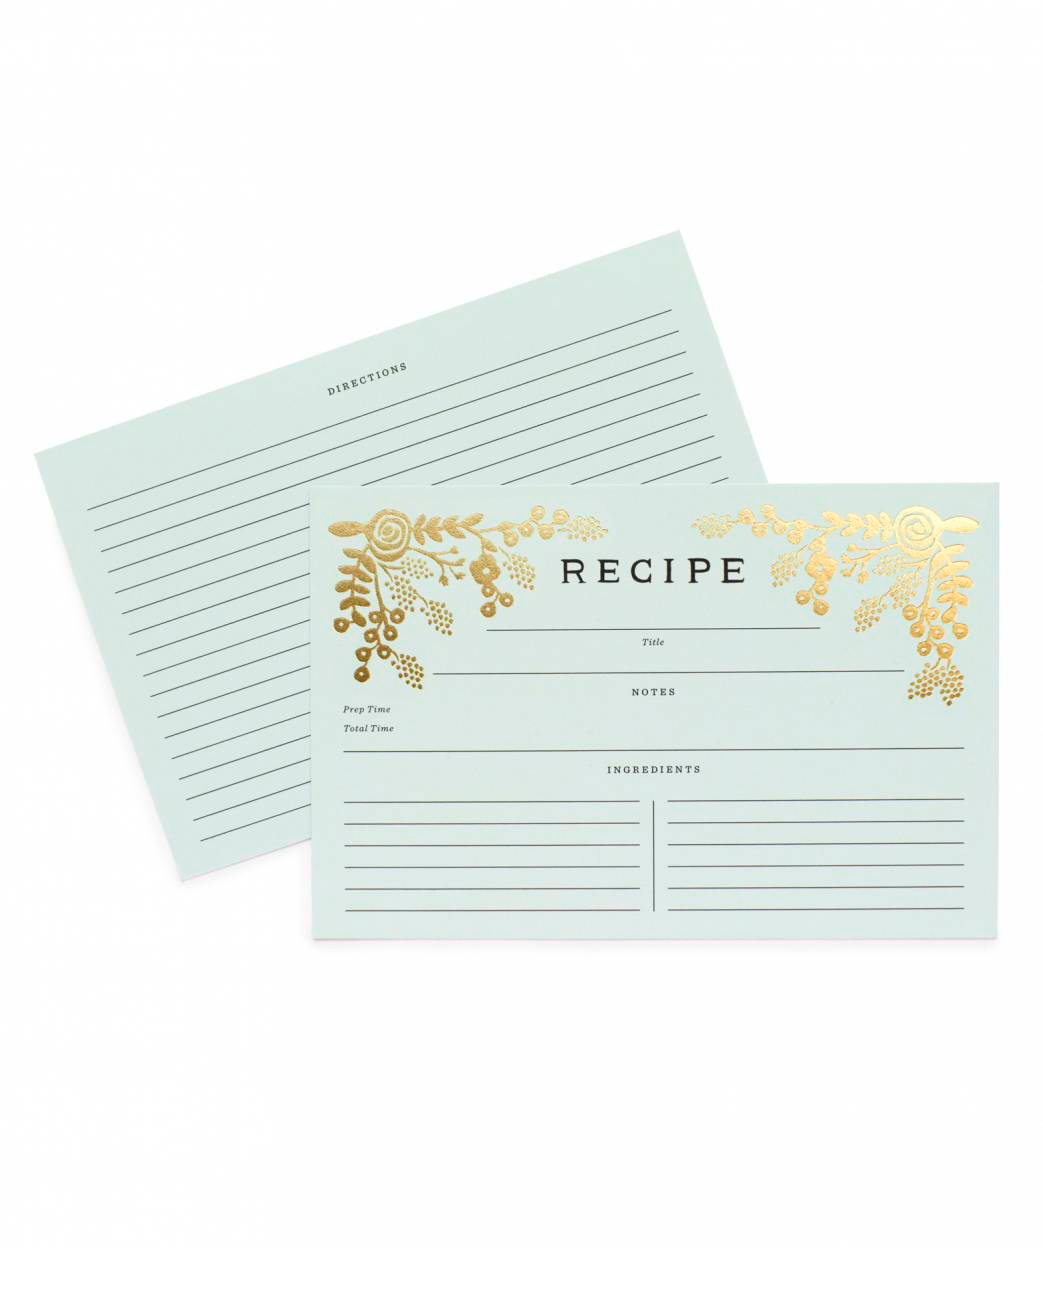 recipe-cards-riflepaperco-golden-garden-0315.jpg